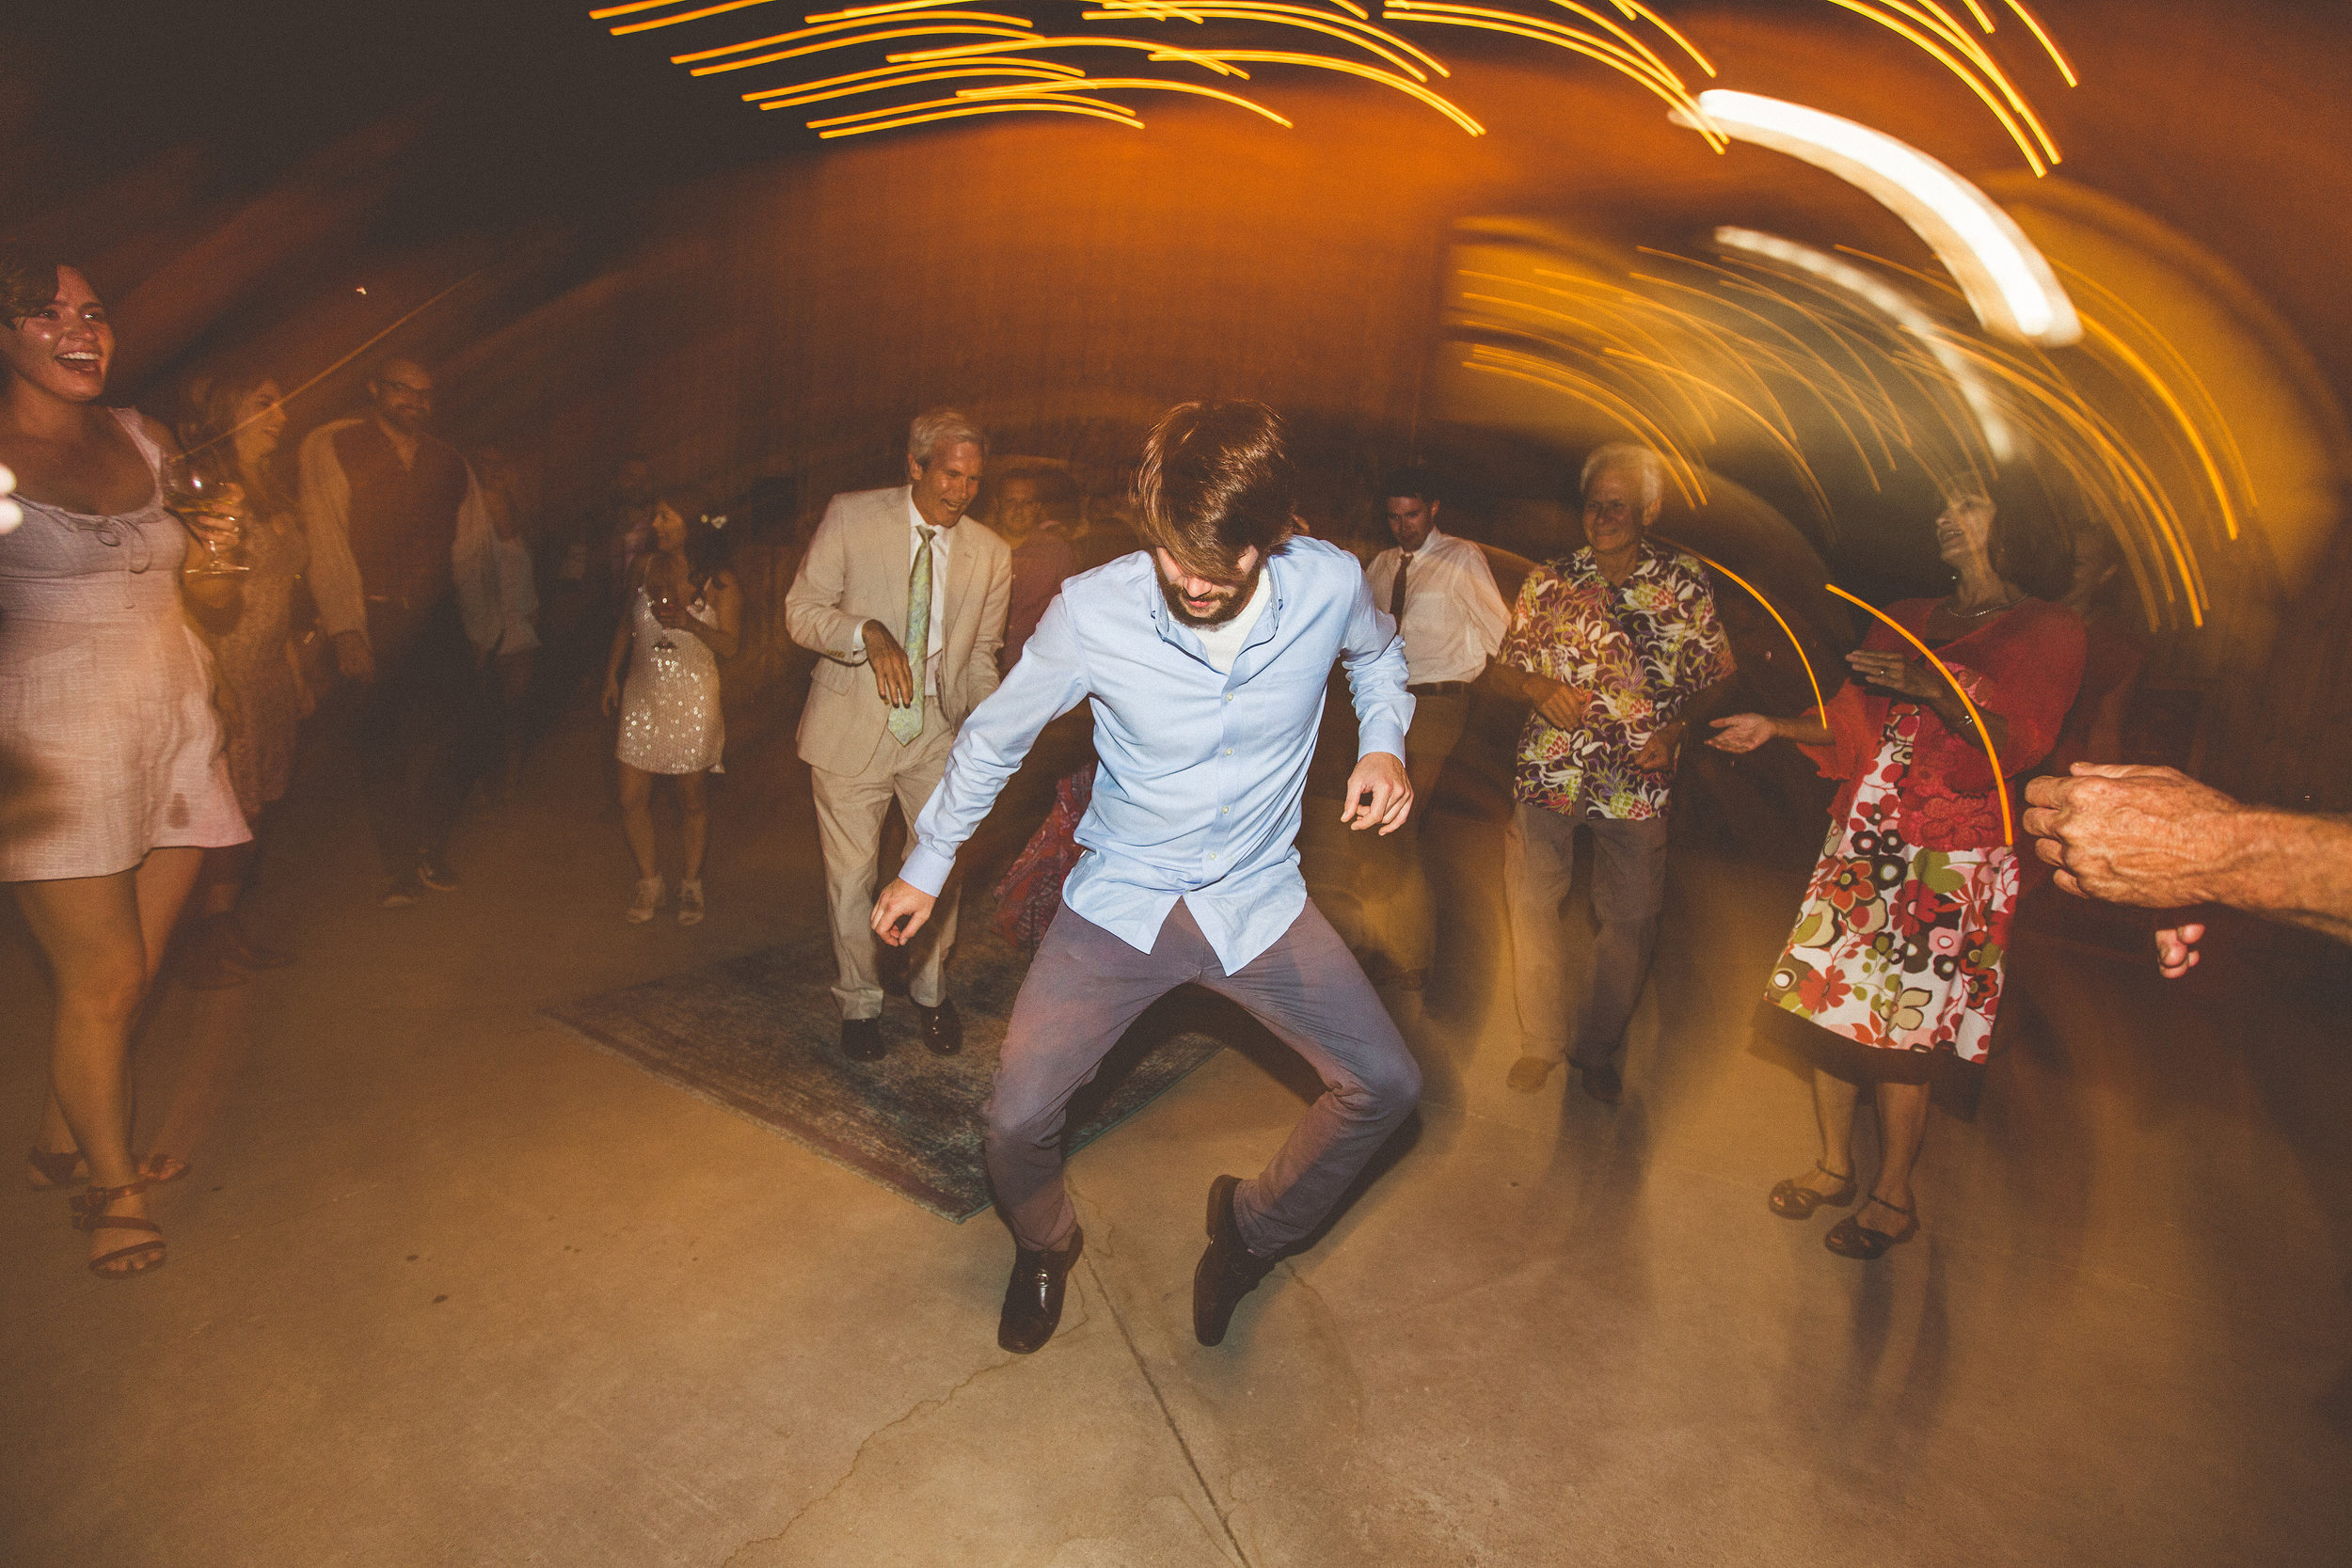 guests really started groovin' once the DJ took over for the evening... including the darling bride!